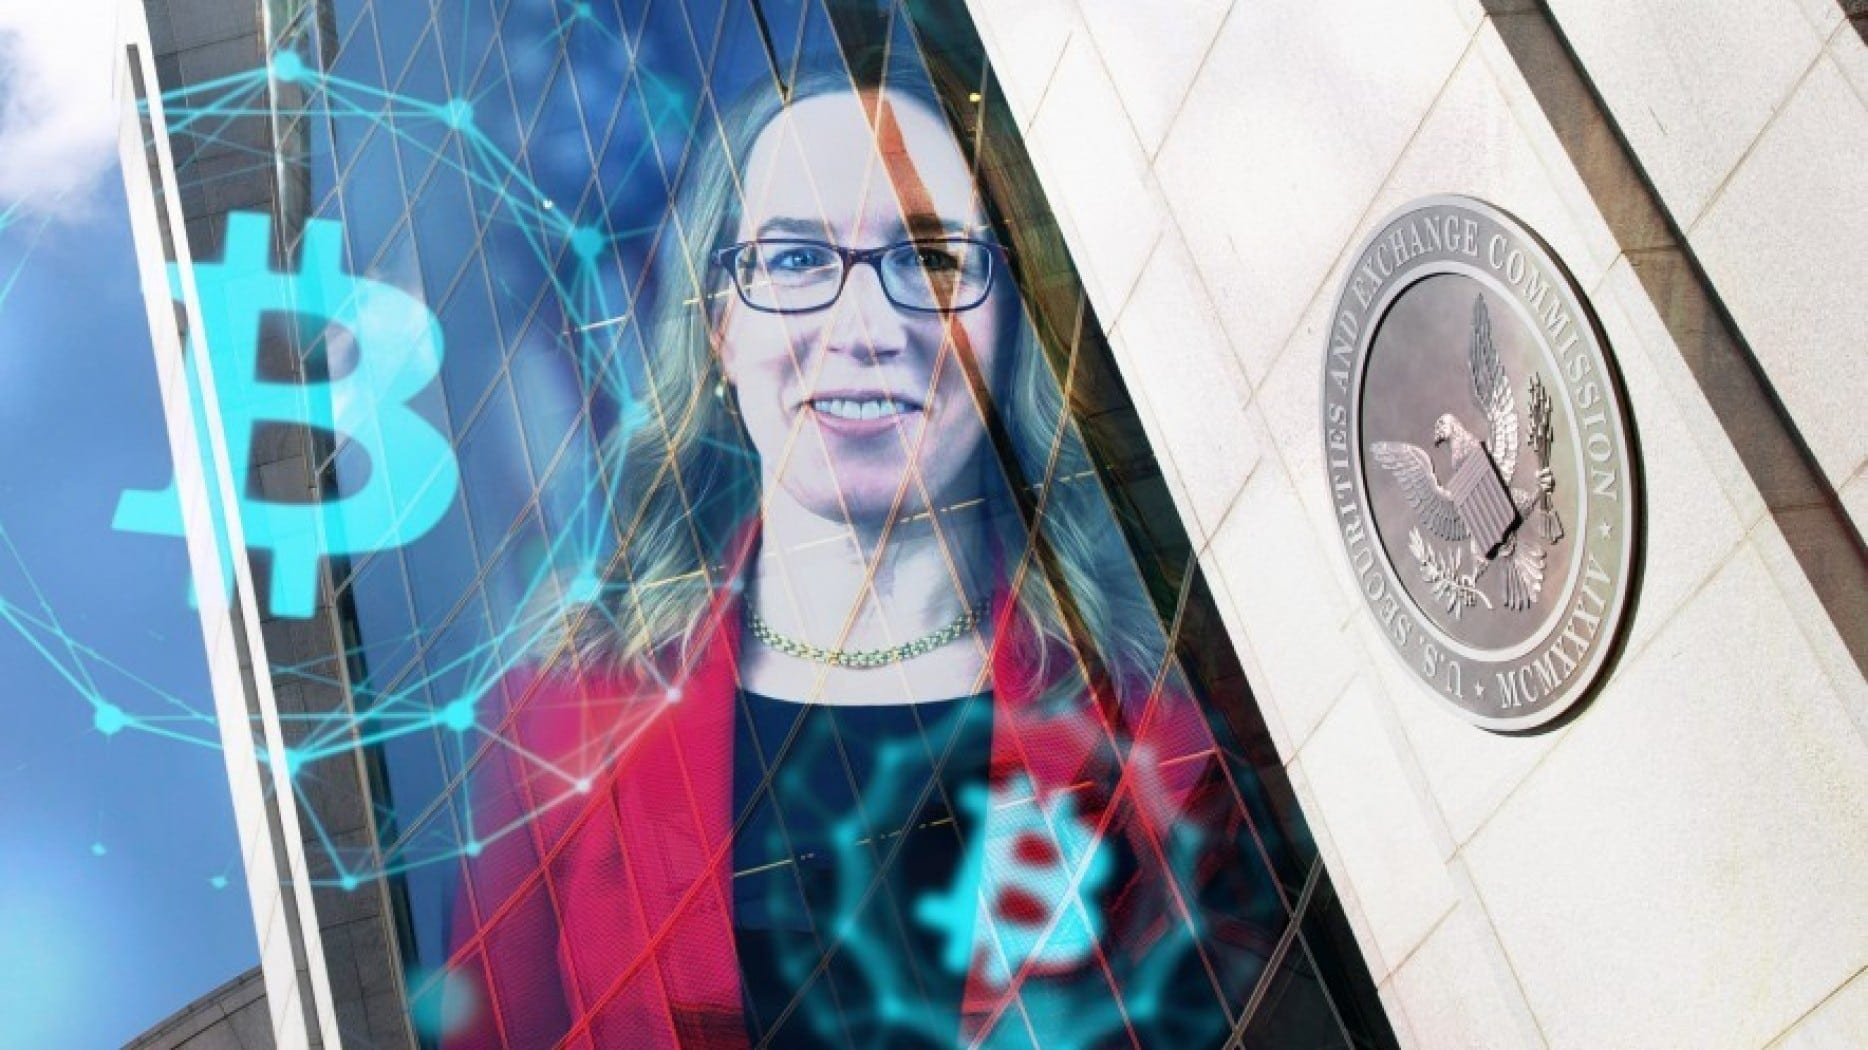 hester pierce cryptos new leading lady1 x1050 1px - Bitcoin ETF Should Have Gotten The Green Light, Says SEC Commissioner Hester Peirce